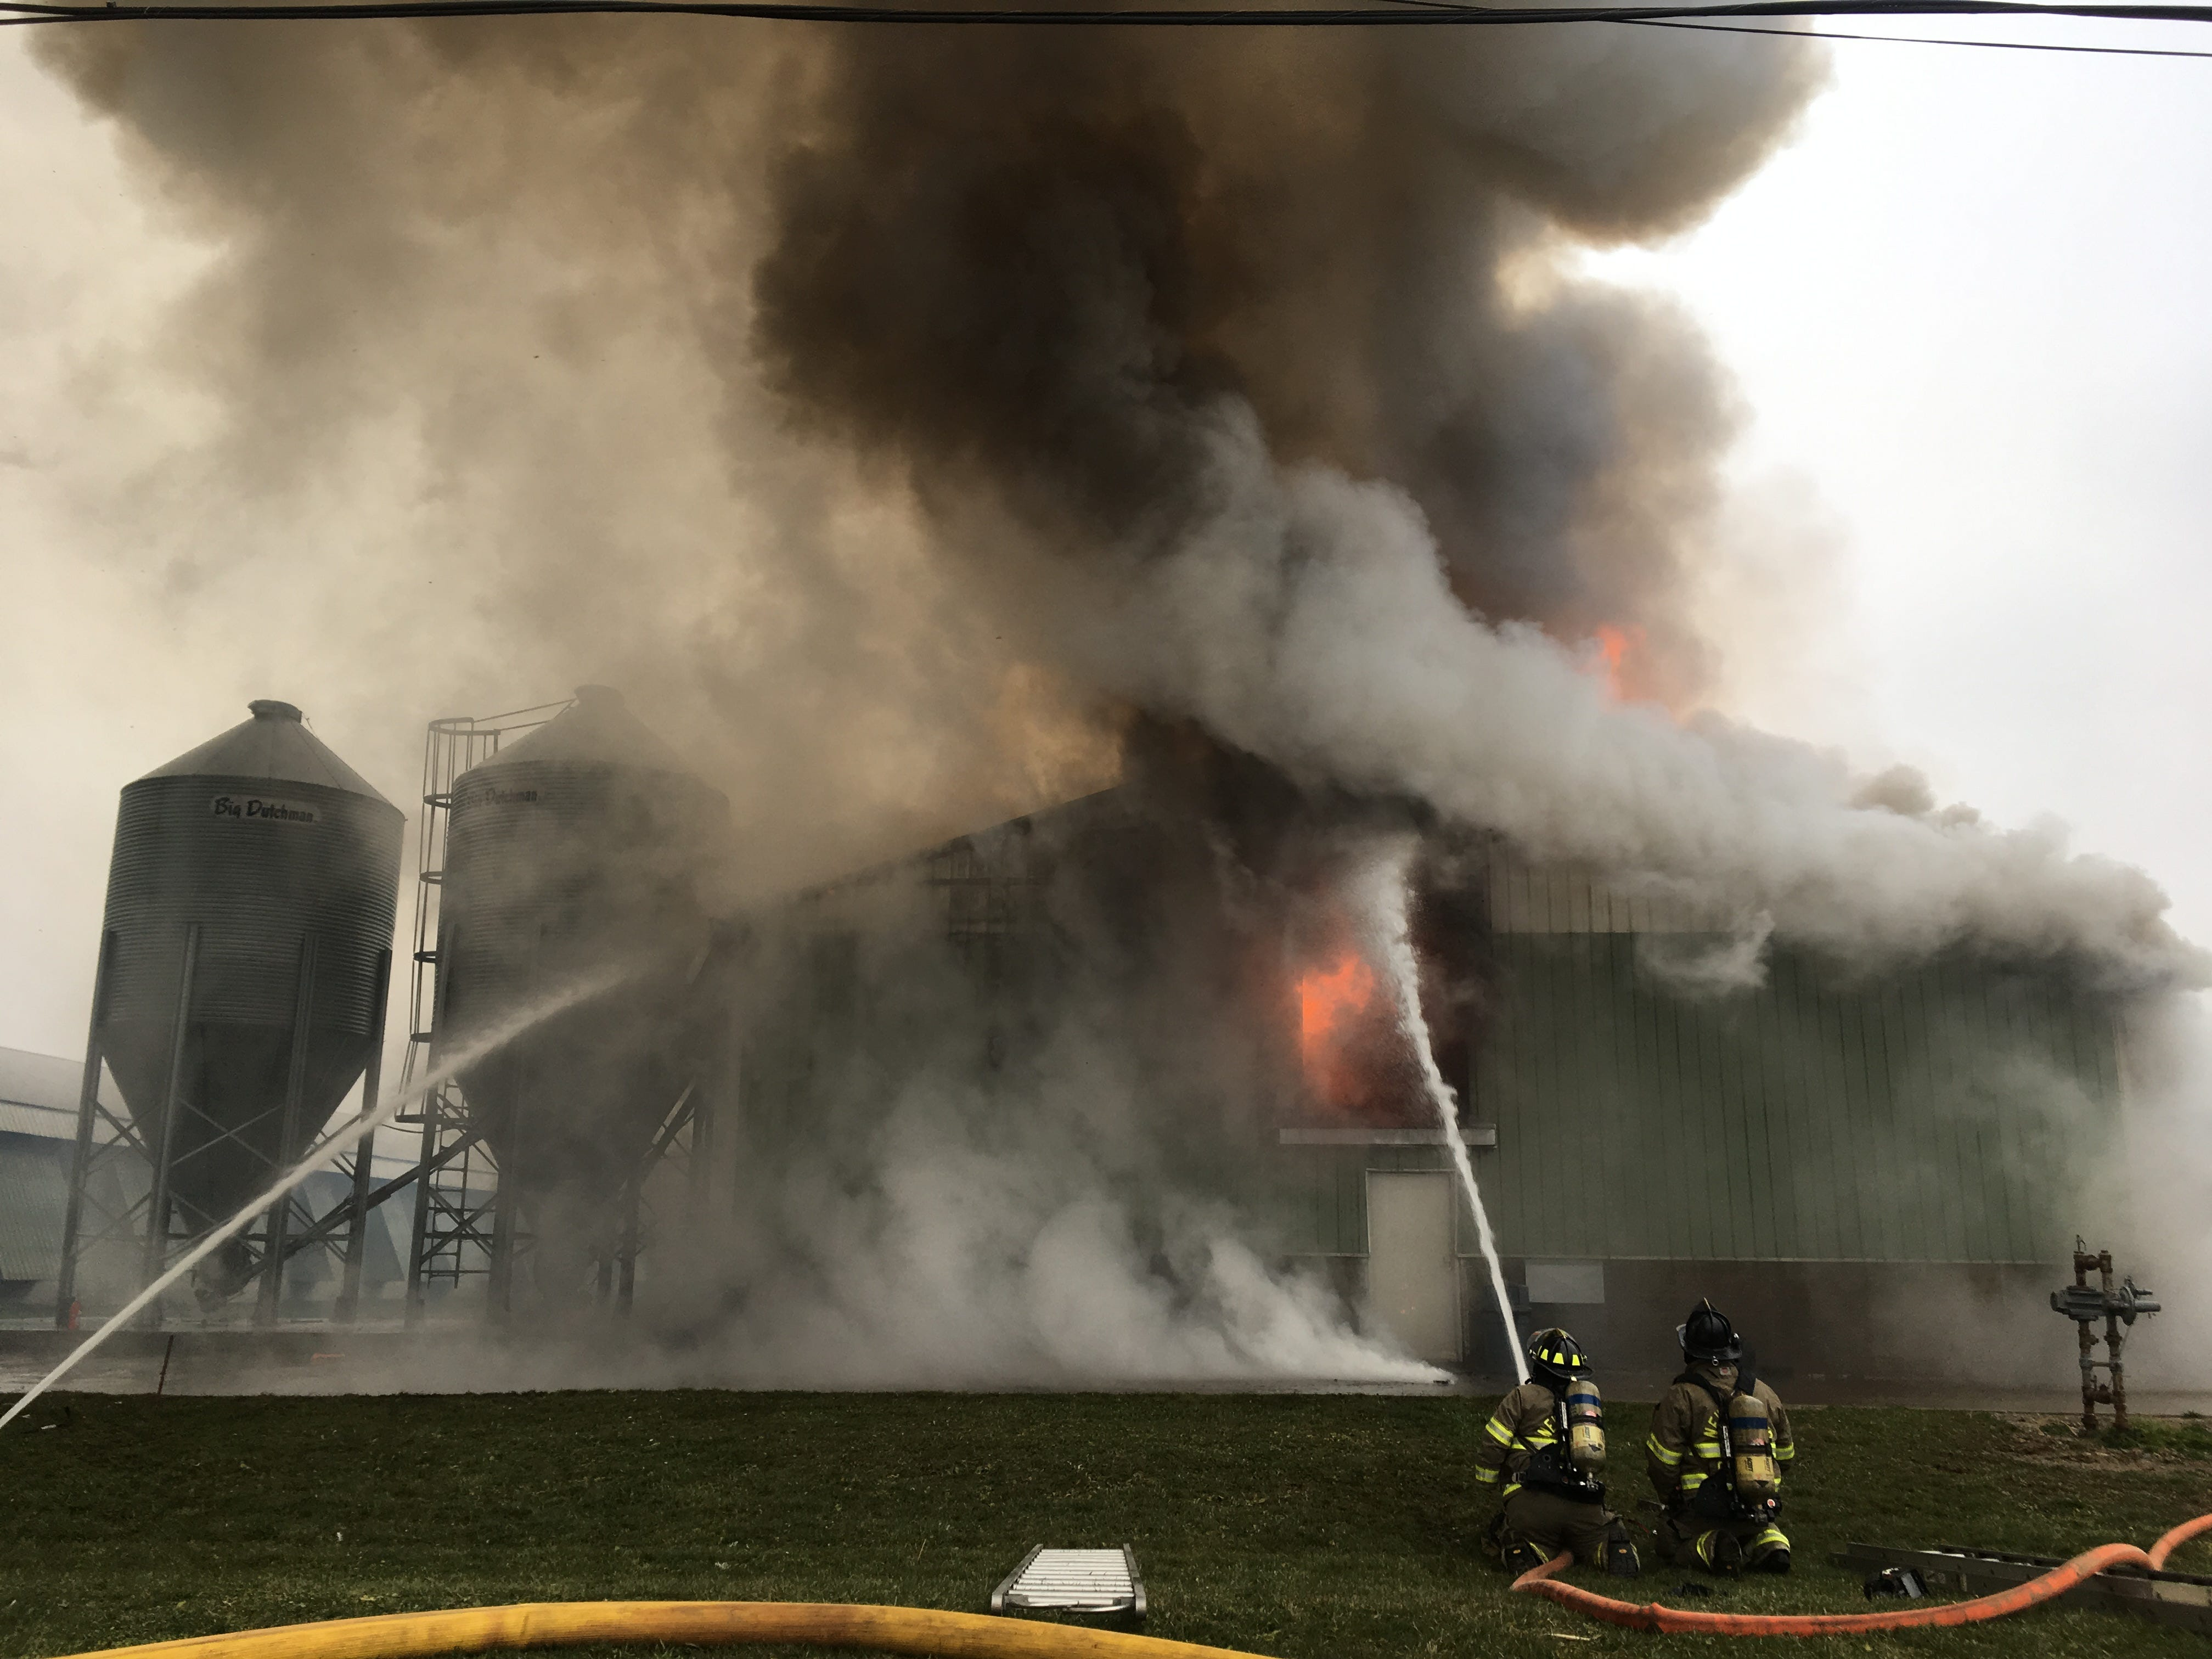 Firefighters work to contain a barn fire at Trillium Farms in Croton on Nov. 30, 2018.